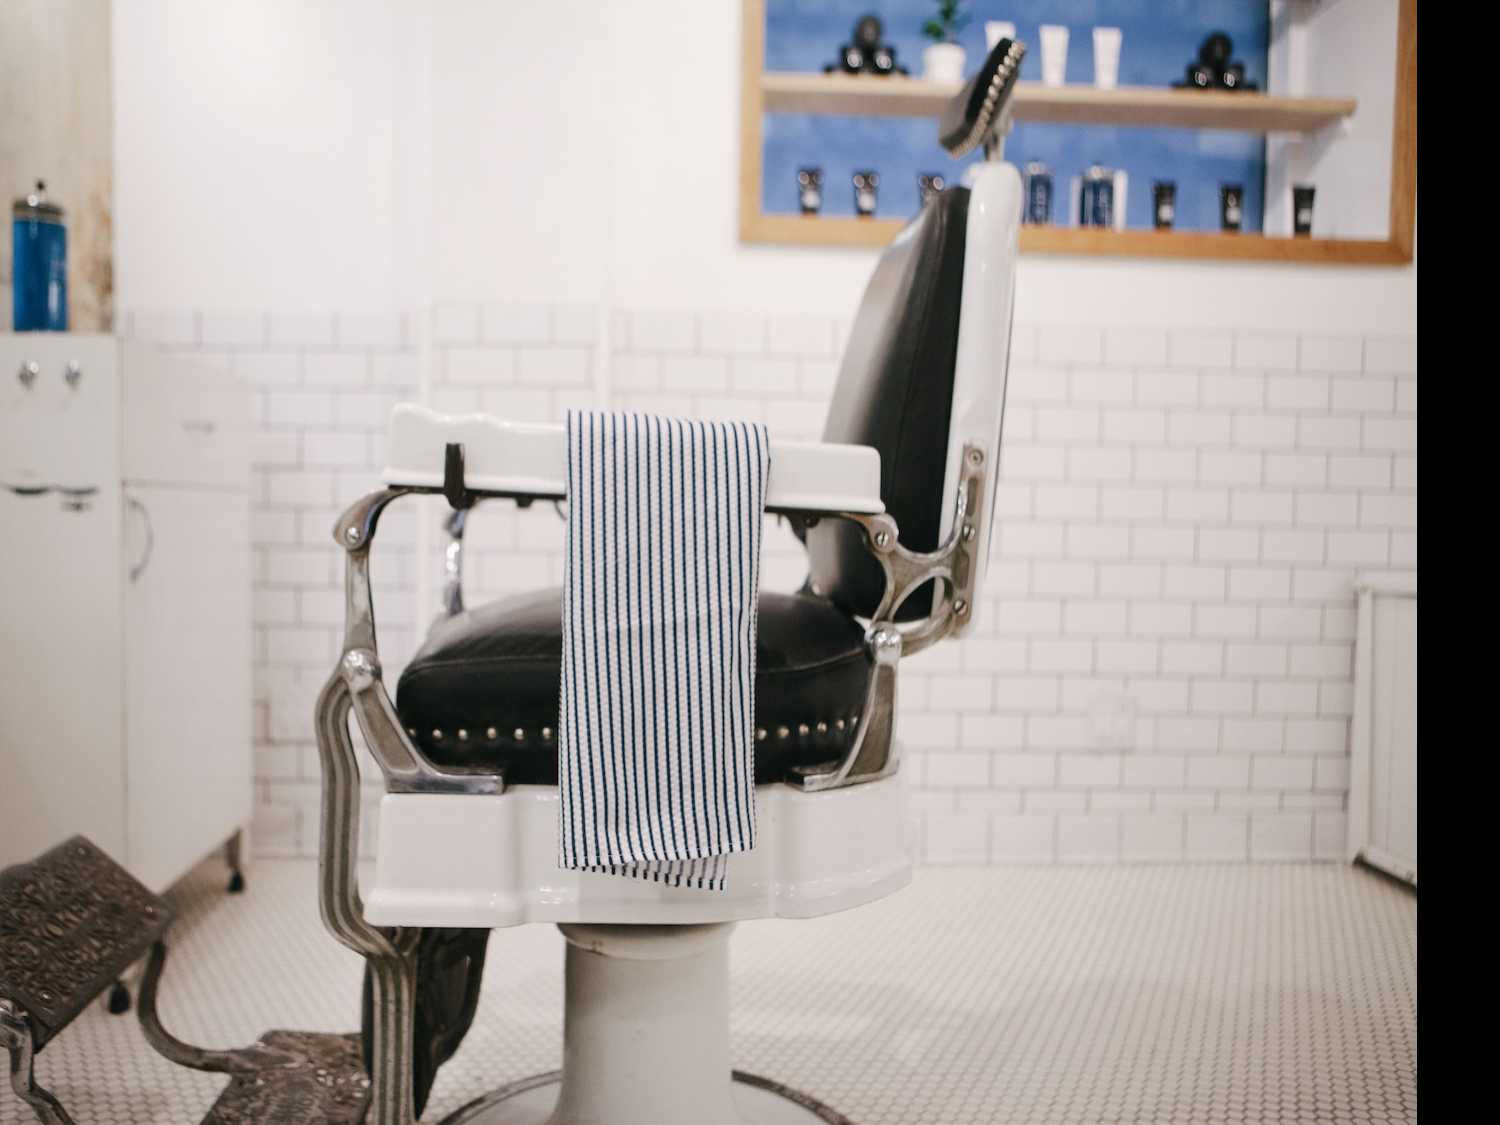 Blind Barber Opens at Moxy Times Square